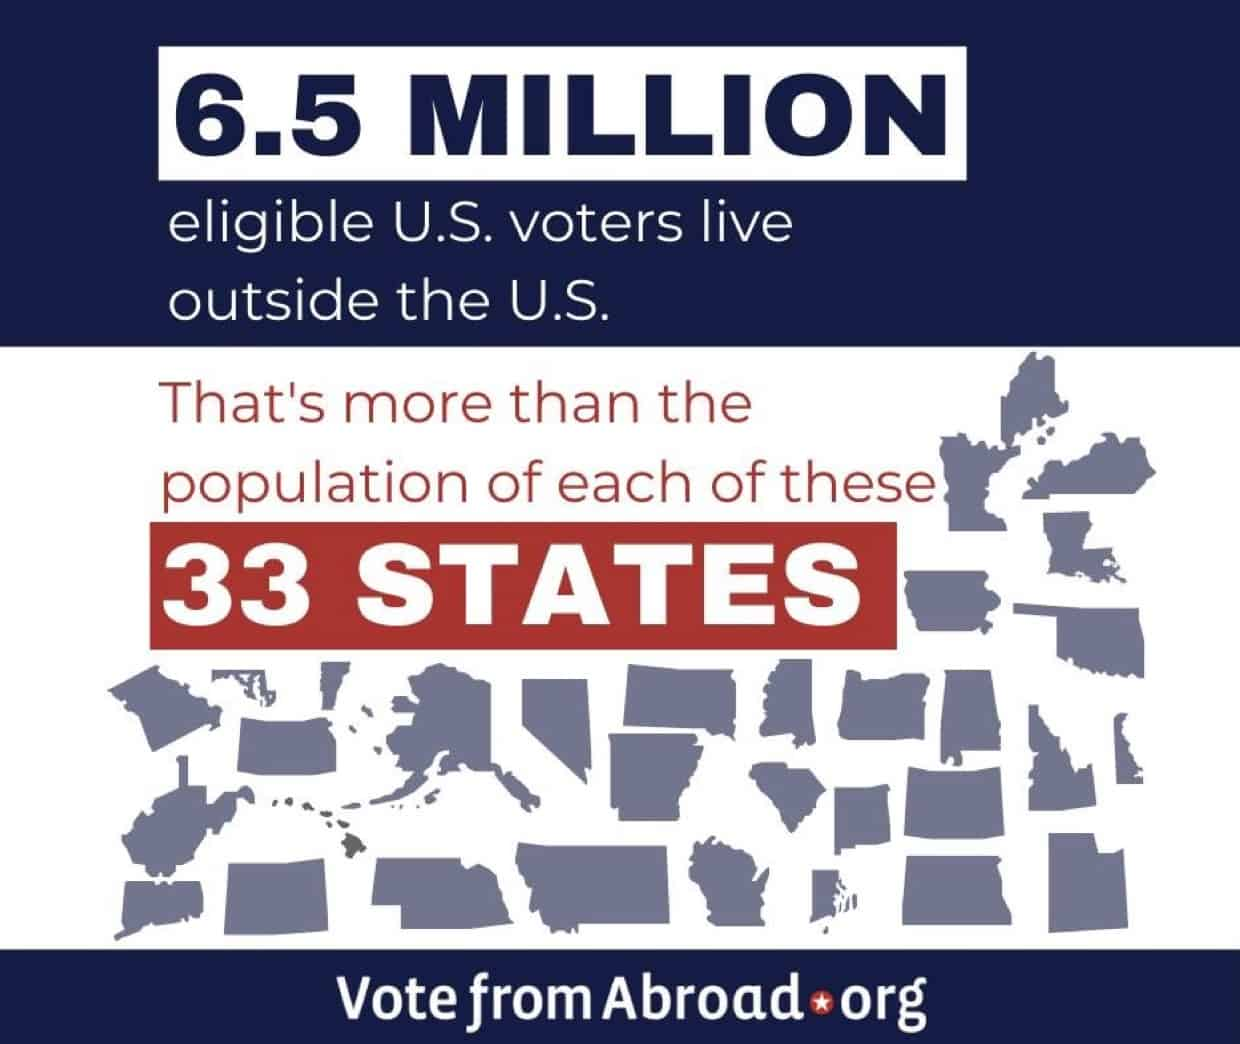 Any US citizen eligible to vote can do so no matter where they live in the world.